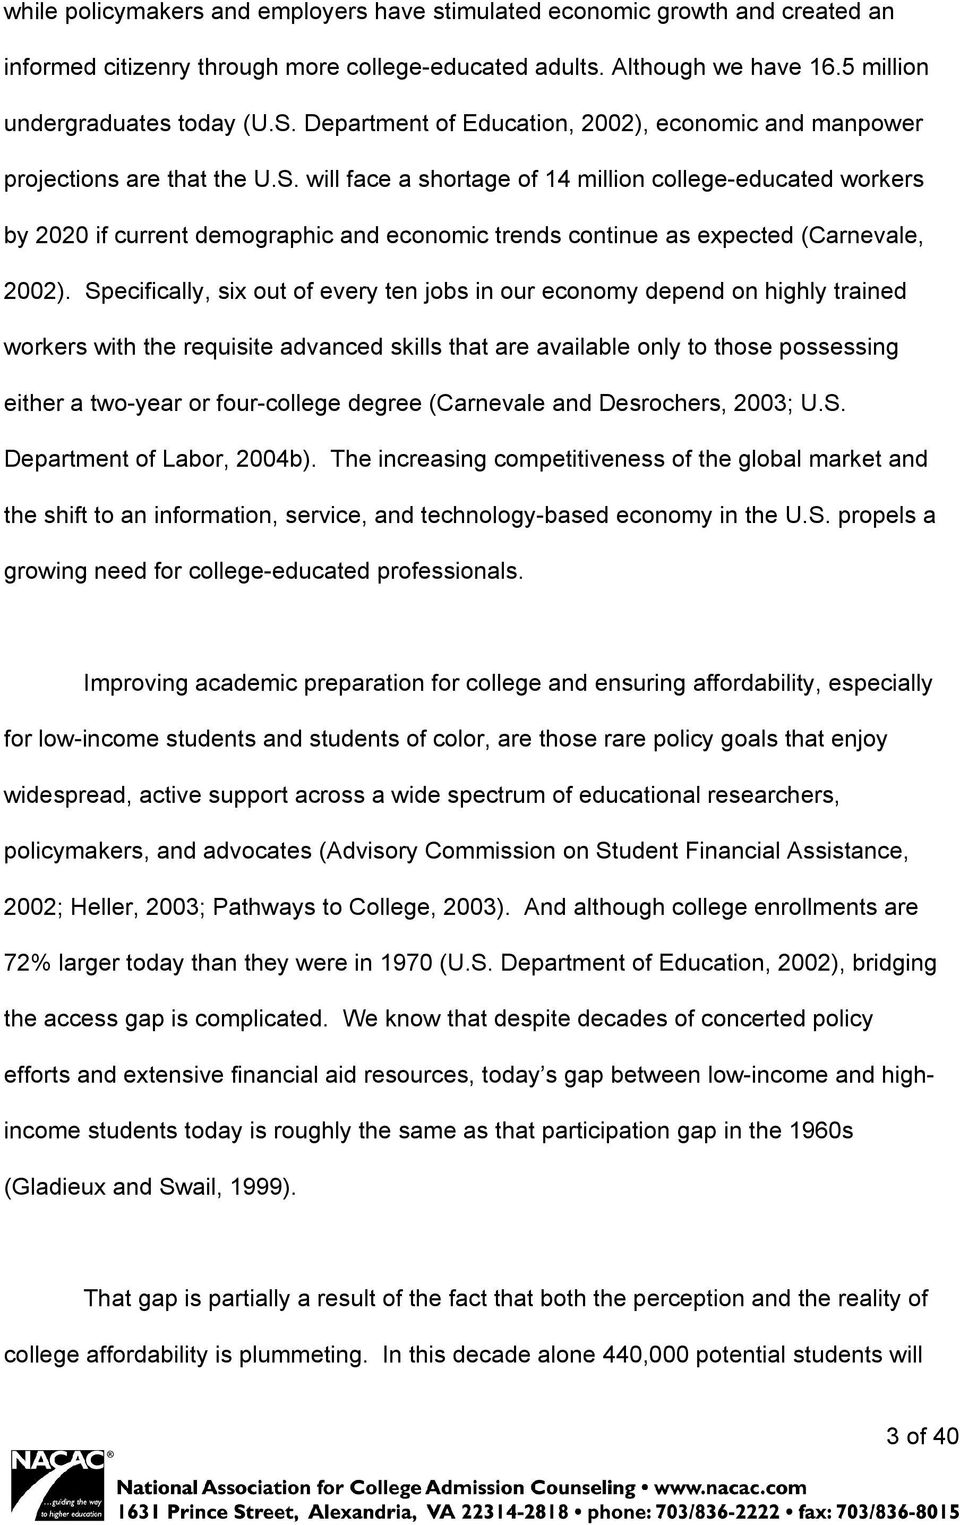 will face a shortage of 14 million college-educated workers by 2020 if current demographic and economic trends continue as expected (Carnevale, 2002).